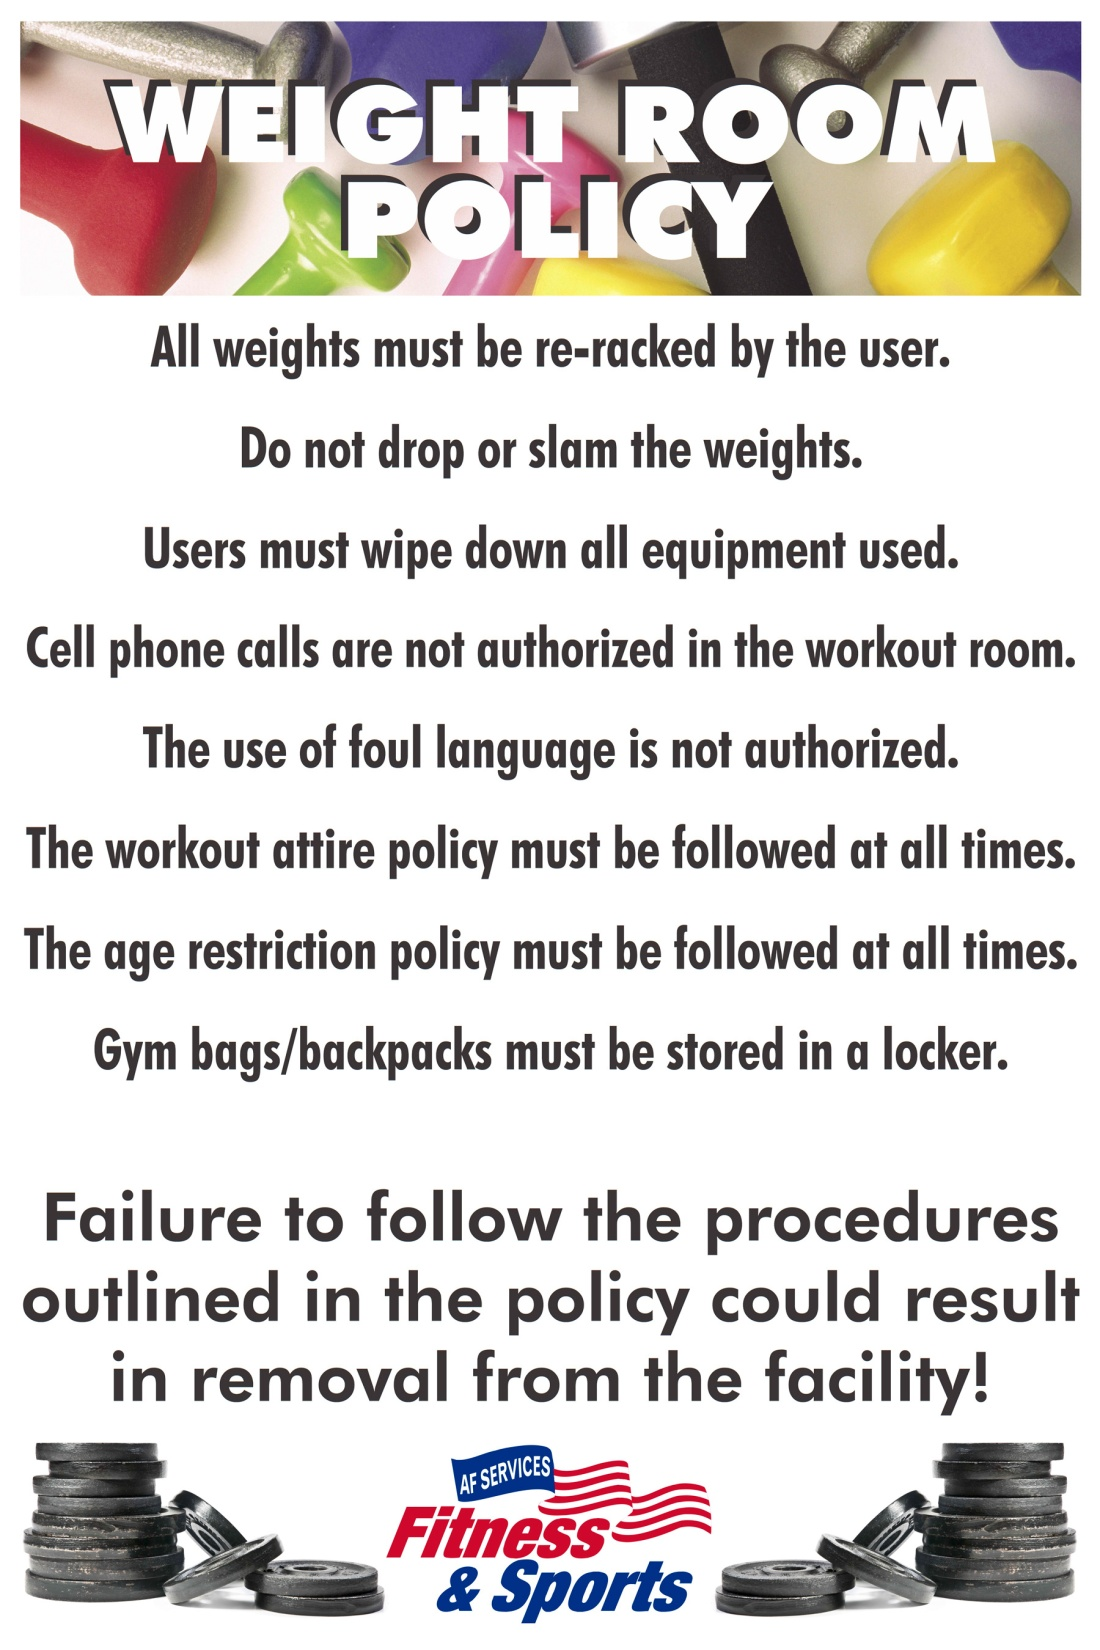 WeightRoomPolicy